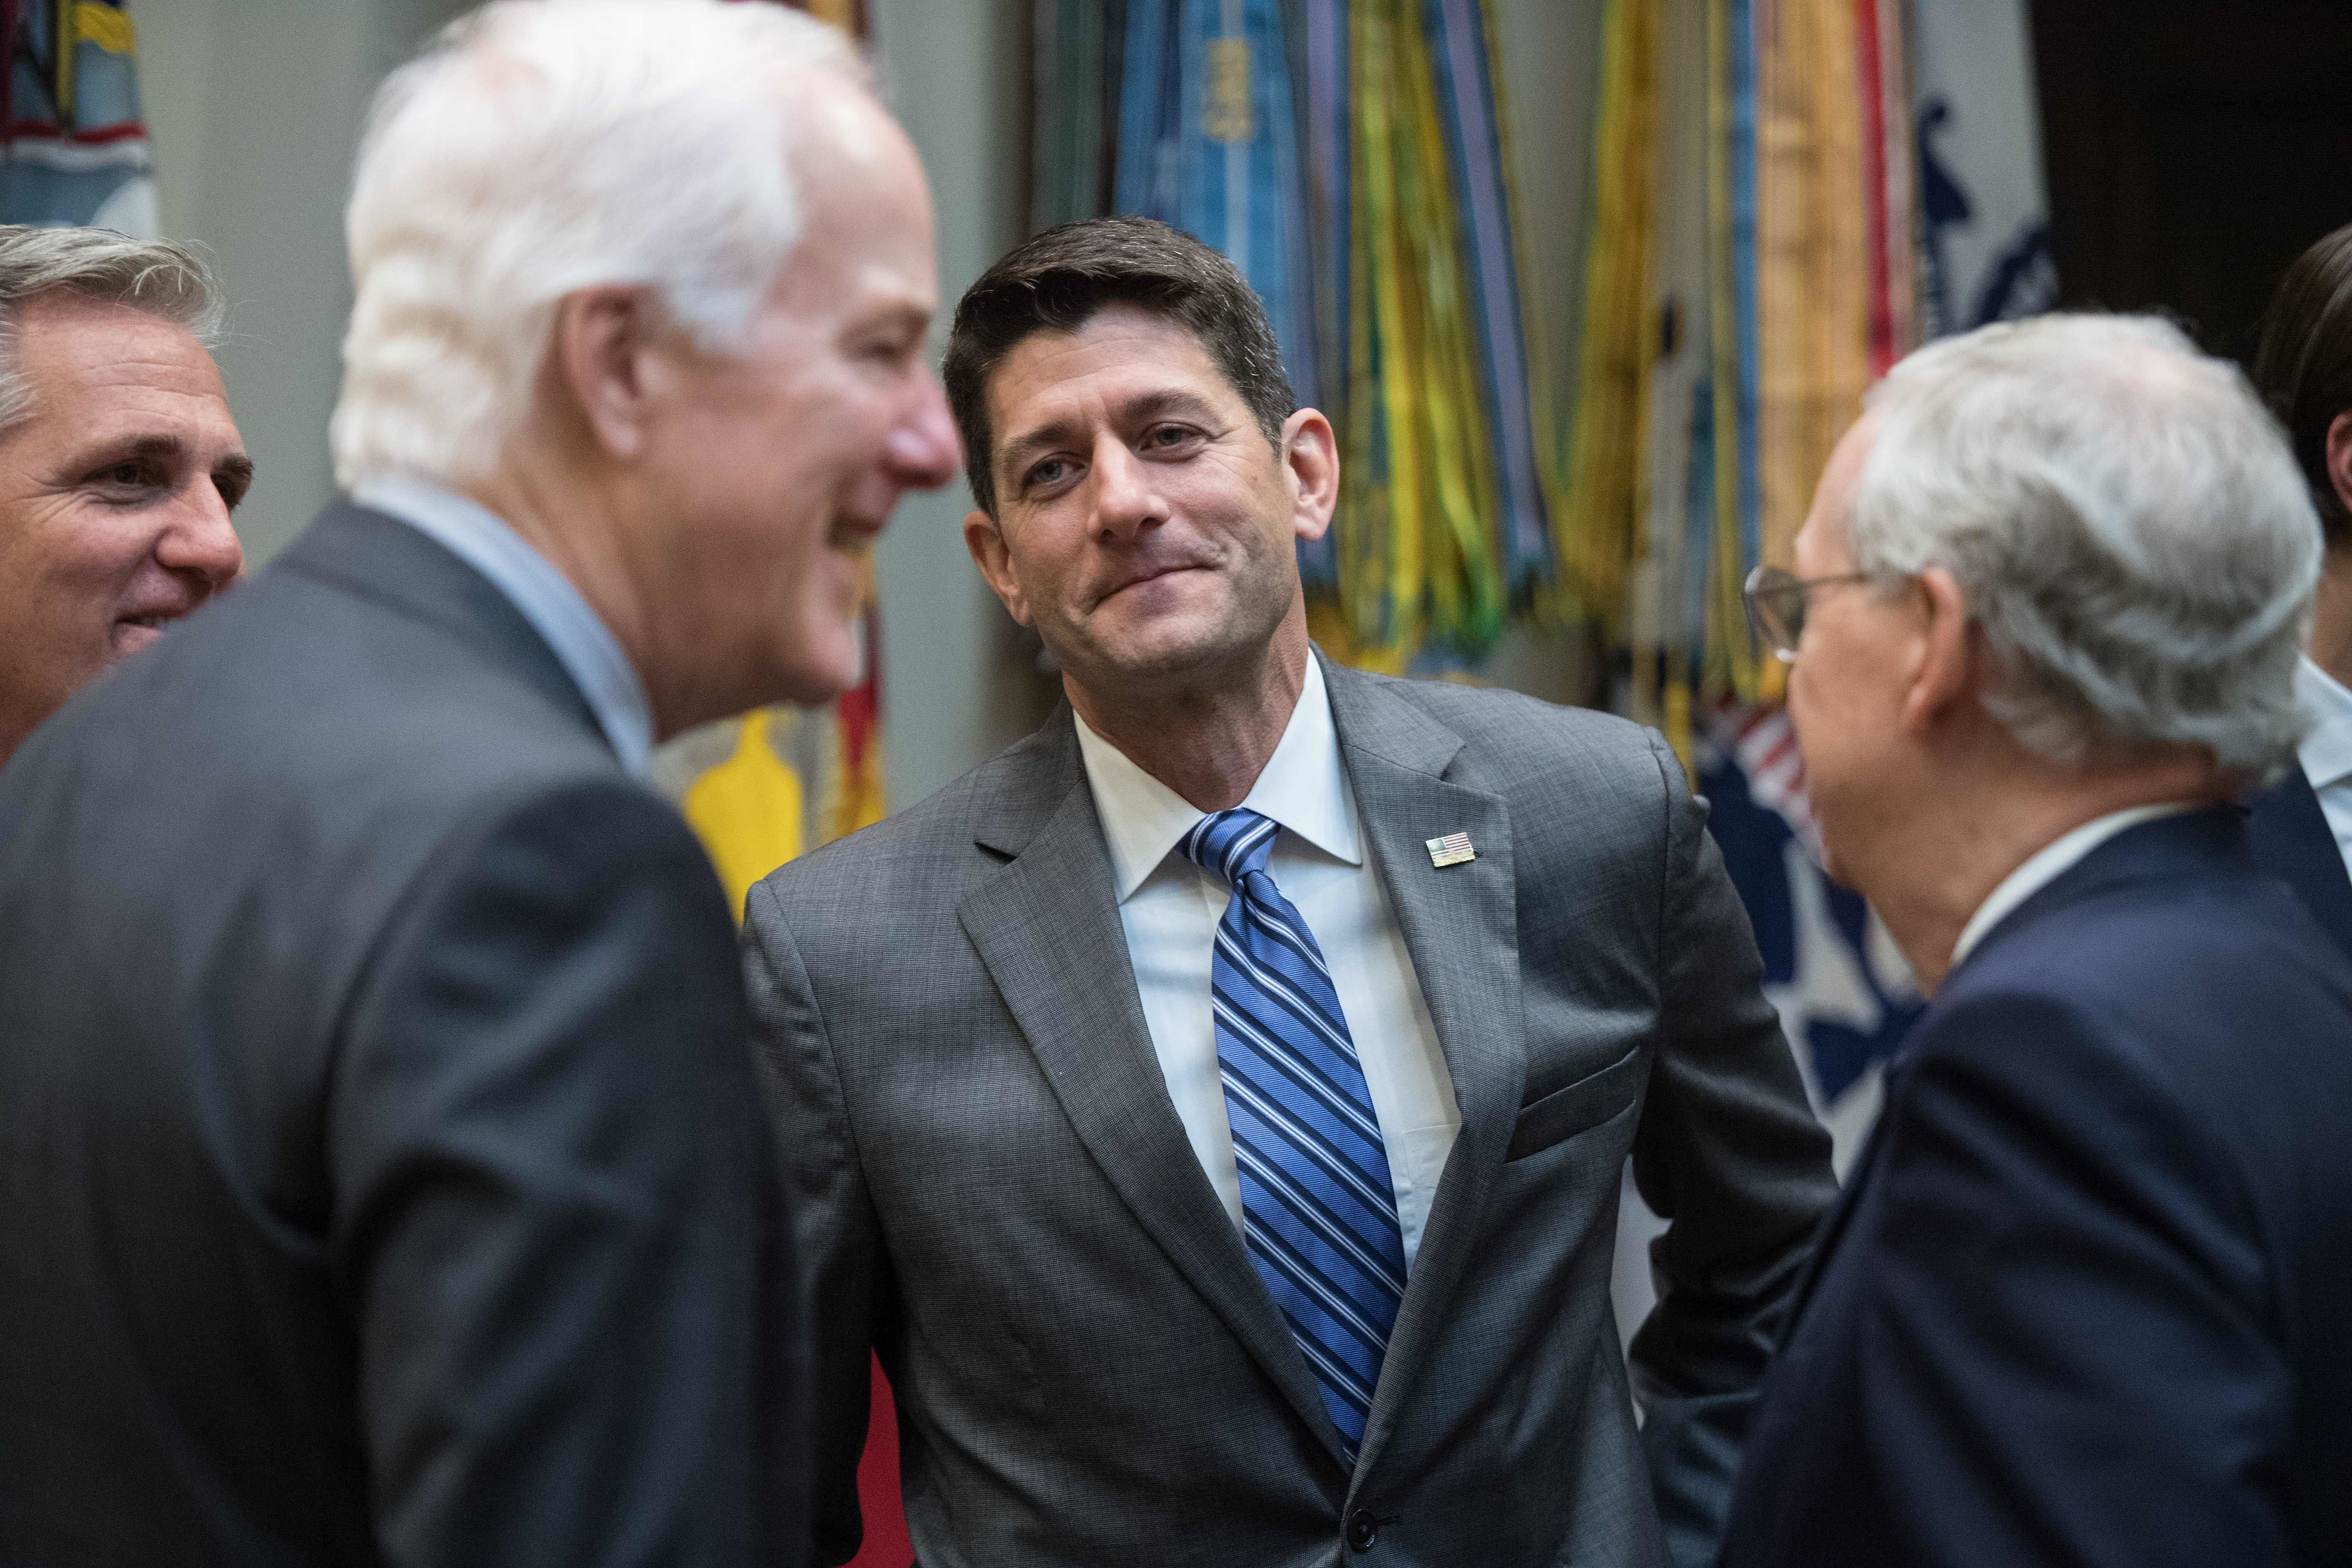 House Speaker Paul Ryan speaks with Senate Majority Leader Mitch McConnell (R), House Majority Leader Kevin McCarthy (L) and Senate Majotiy Whip John Cornyn (2nd L)) before a meeting of the House and Senate leadership with Trump in the Roosevelt Room at the White House in Washington, DC, on June 6, 2017. / AFP PHOTO / NICHOLAS KAMM        (Photo credit should read NICHOLAS KAMM/AFP/Getty Images)